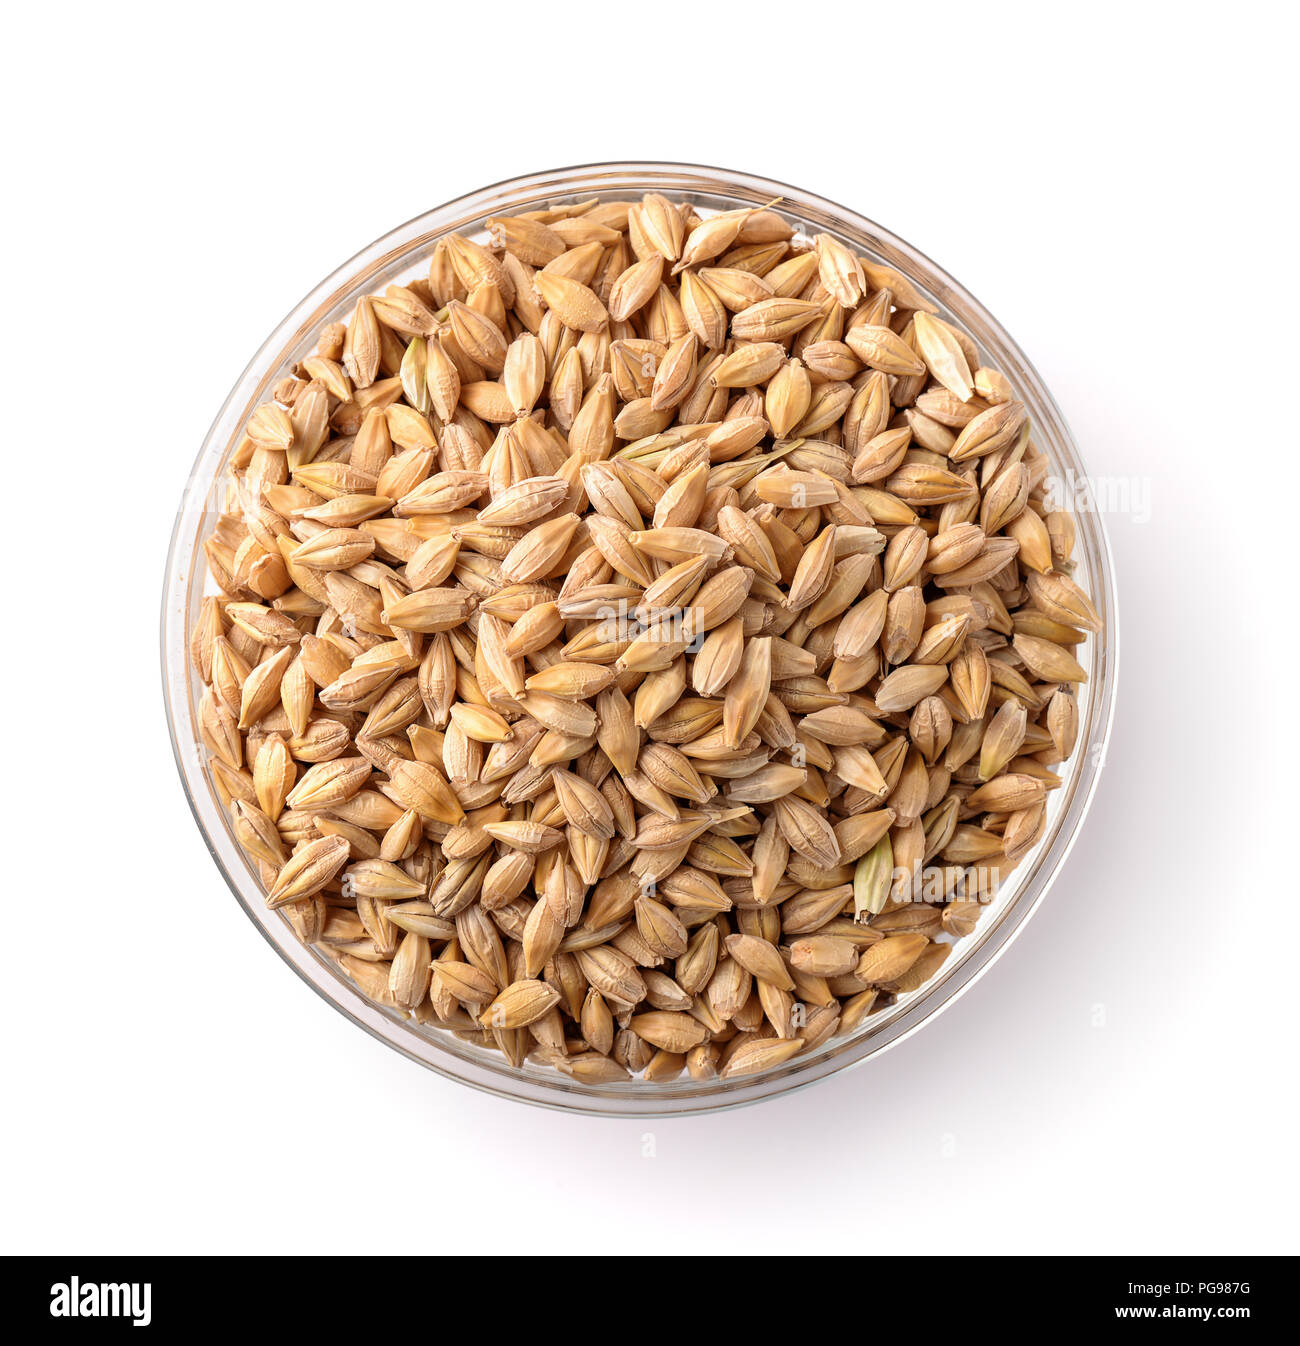 Top view of barley seeds in glass bowl isolated on white - Stock Image